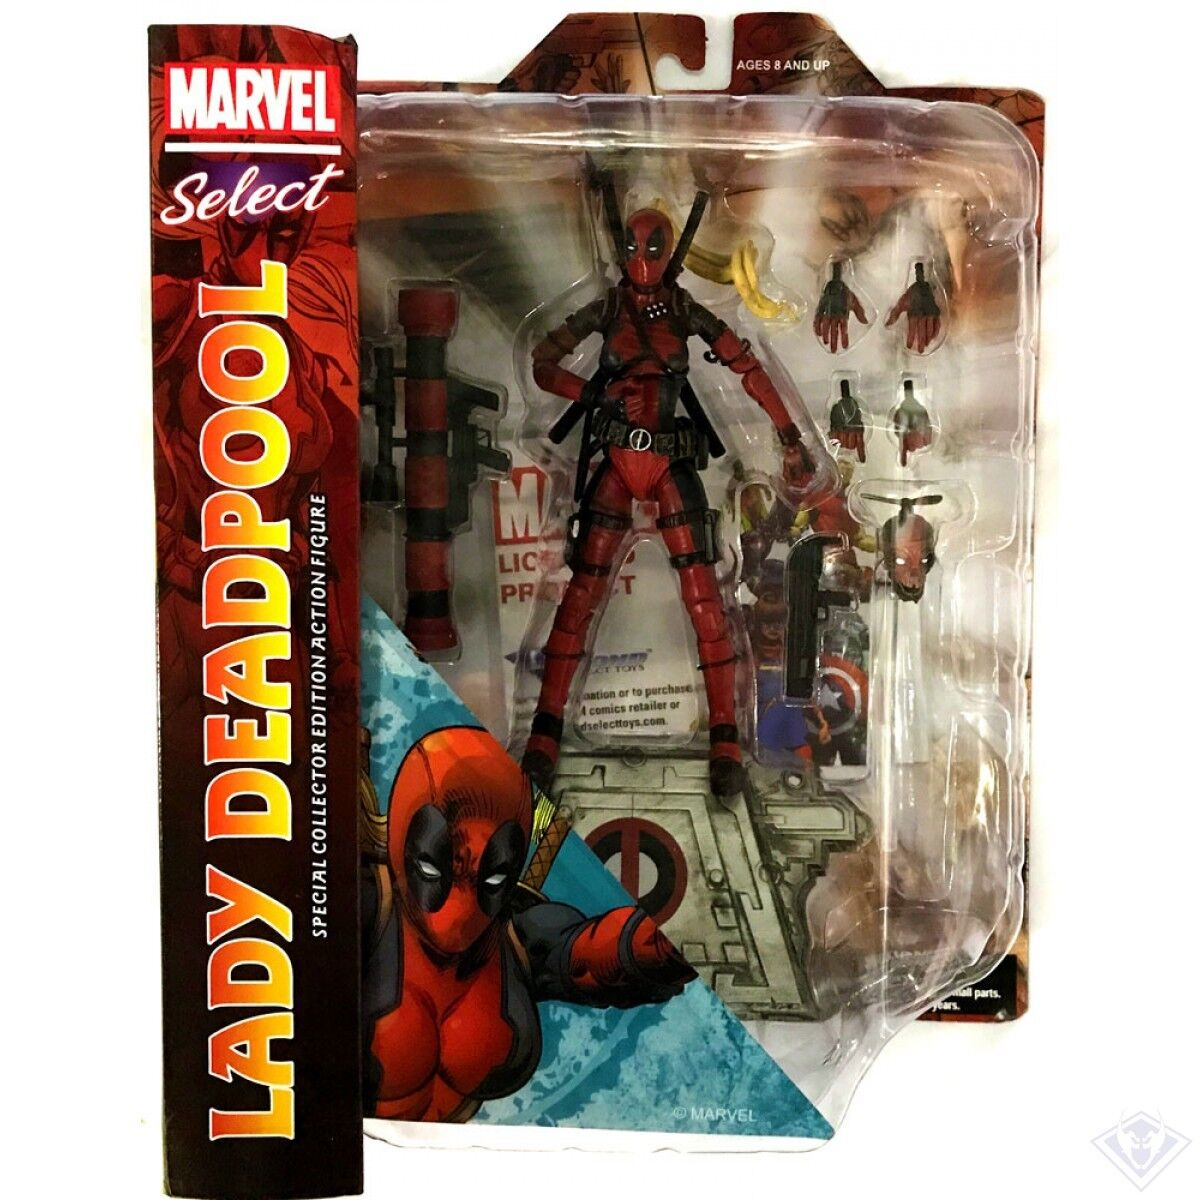 Marvel Select Lady Deadpool Special Collector Edition Action Figure Figure Figure Diamond cecdd5